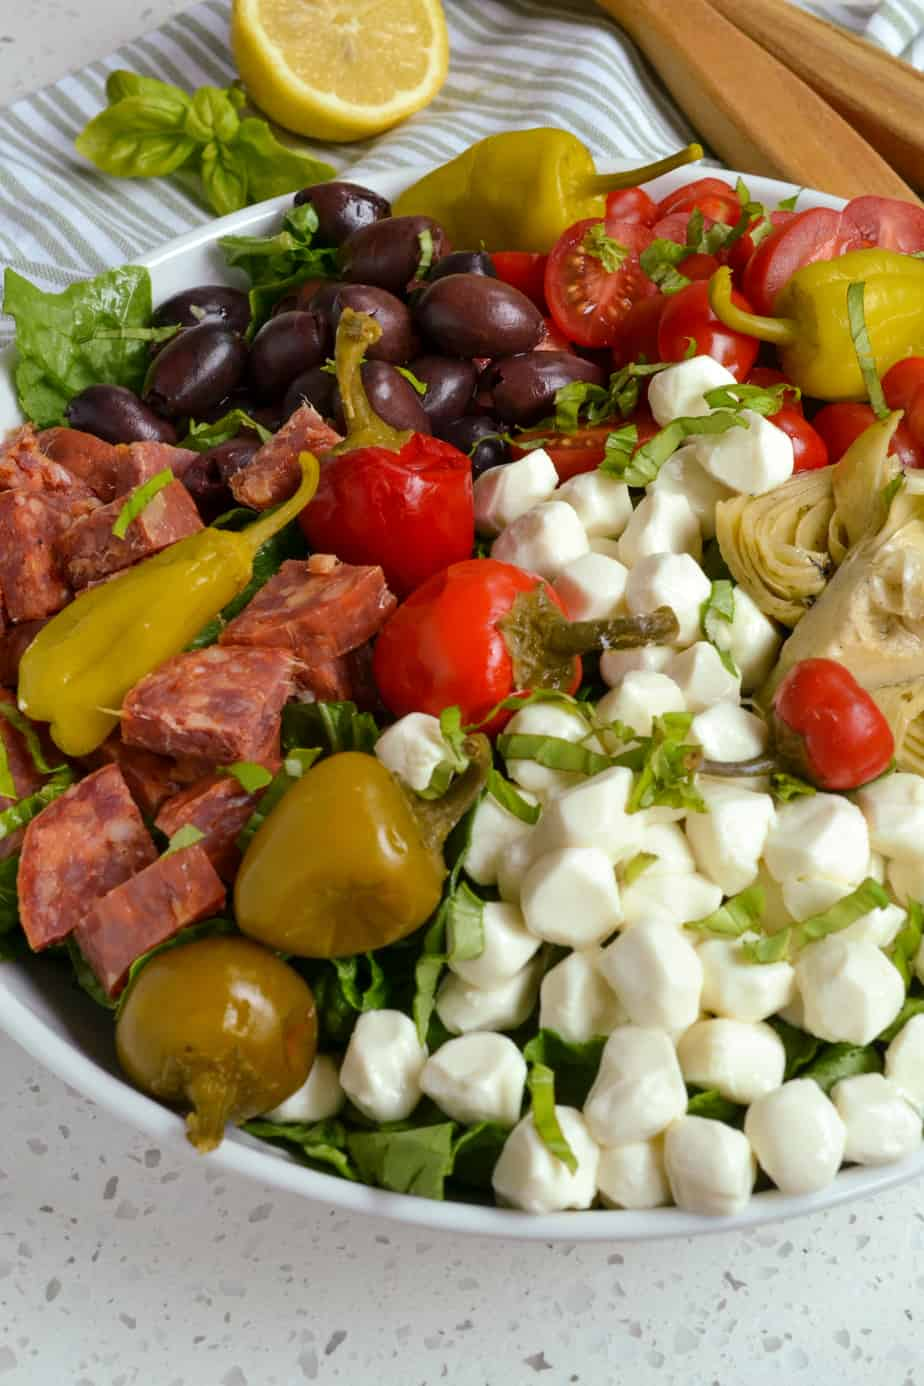 A close up view of antipasto salad in a bowl.